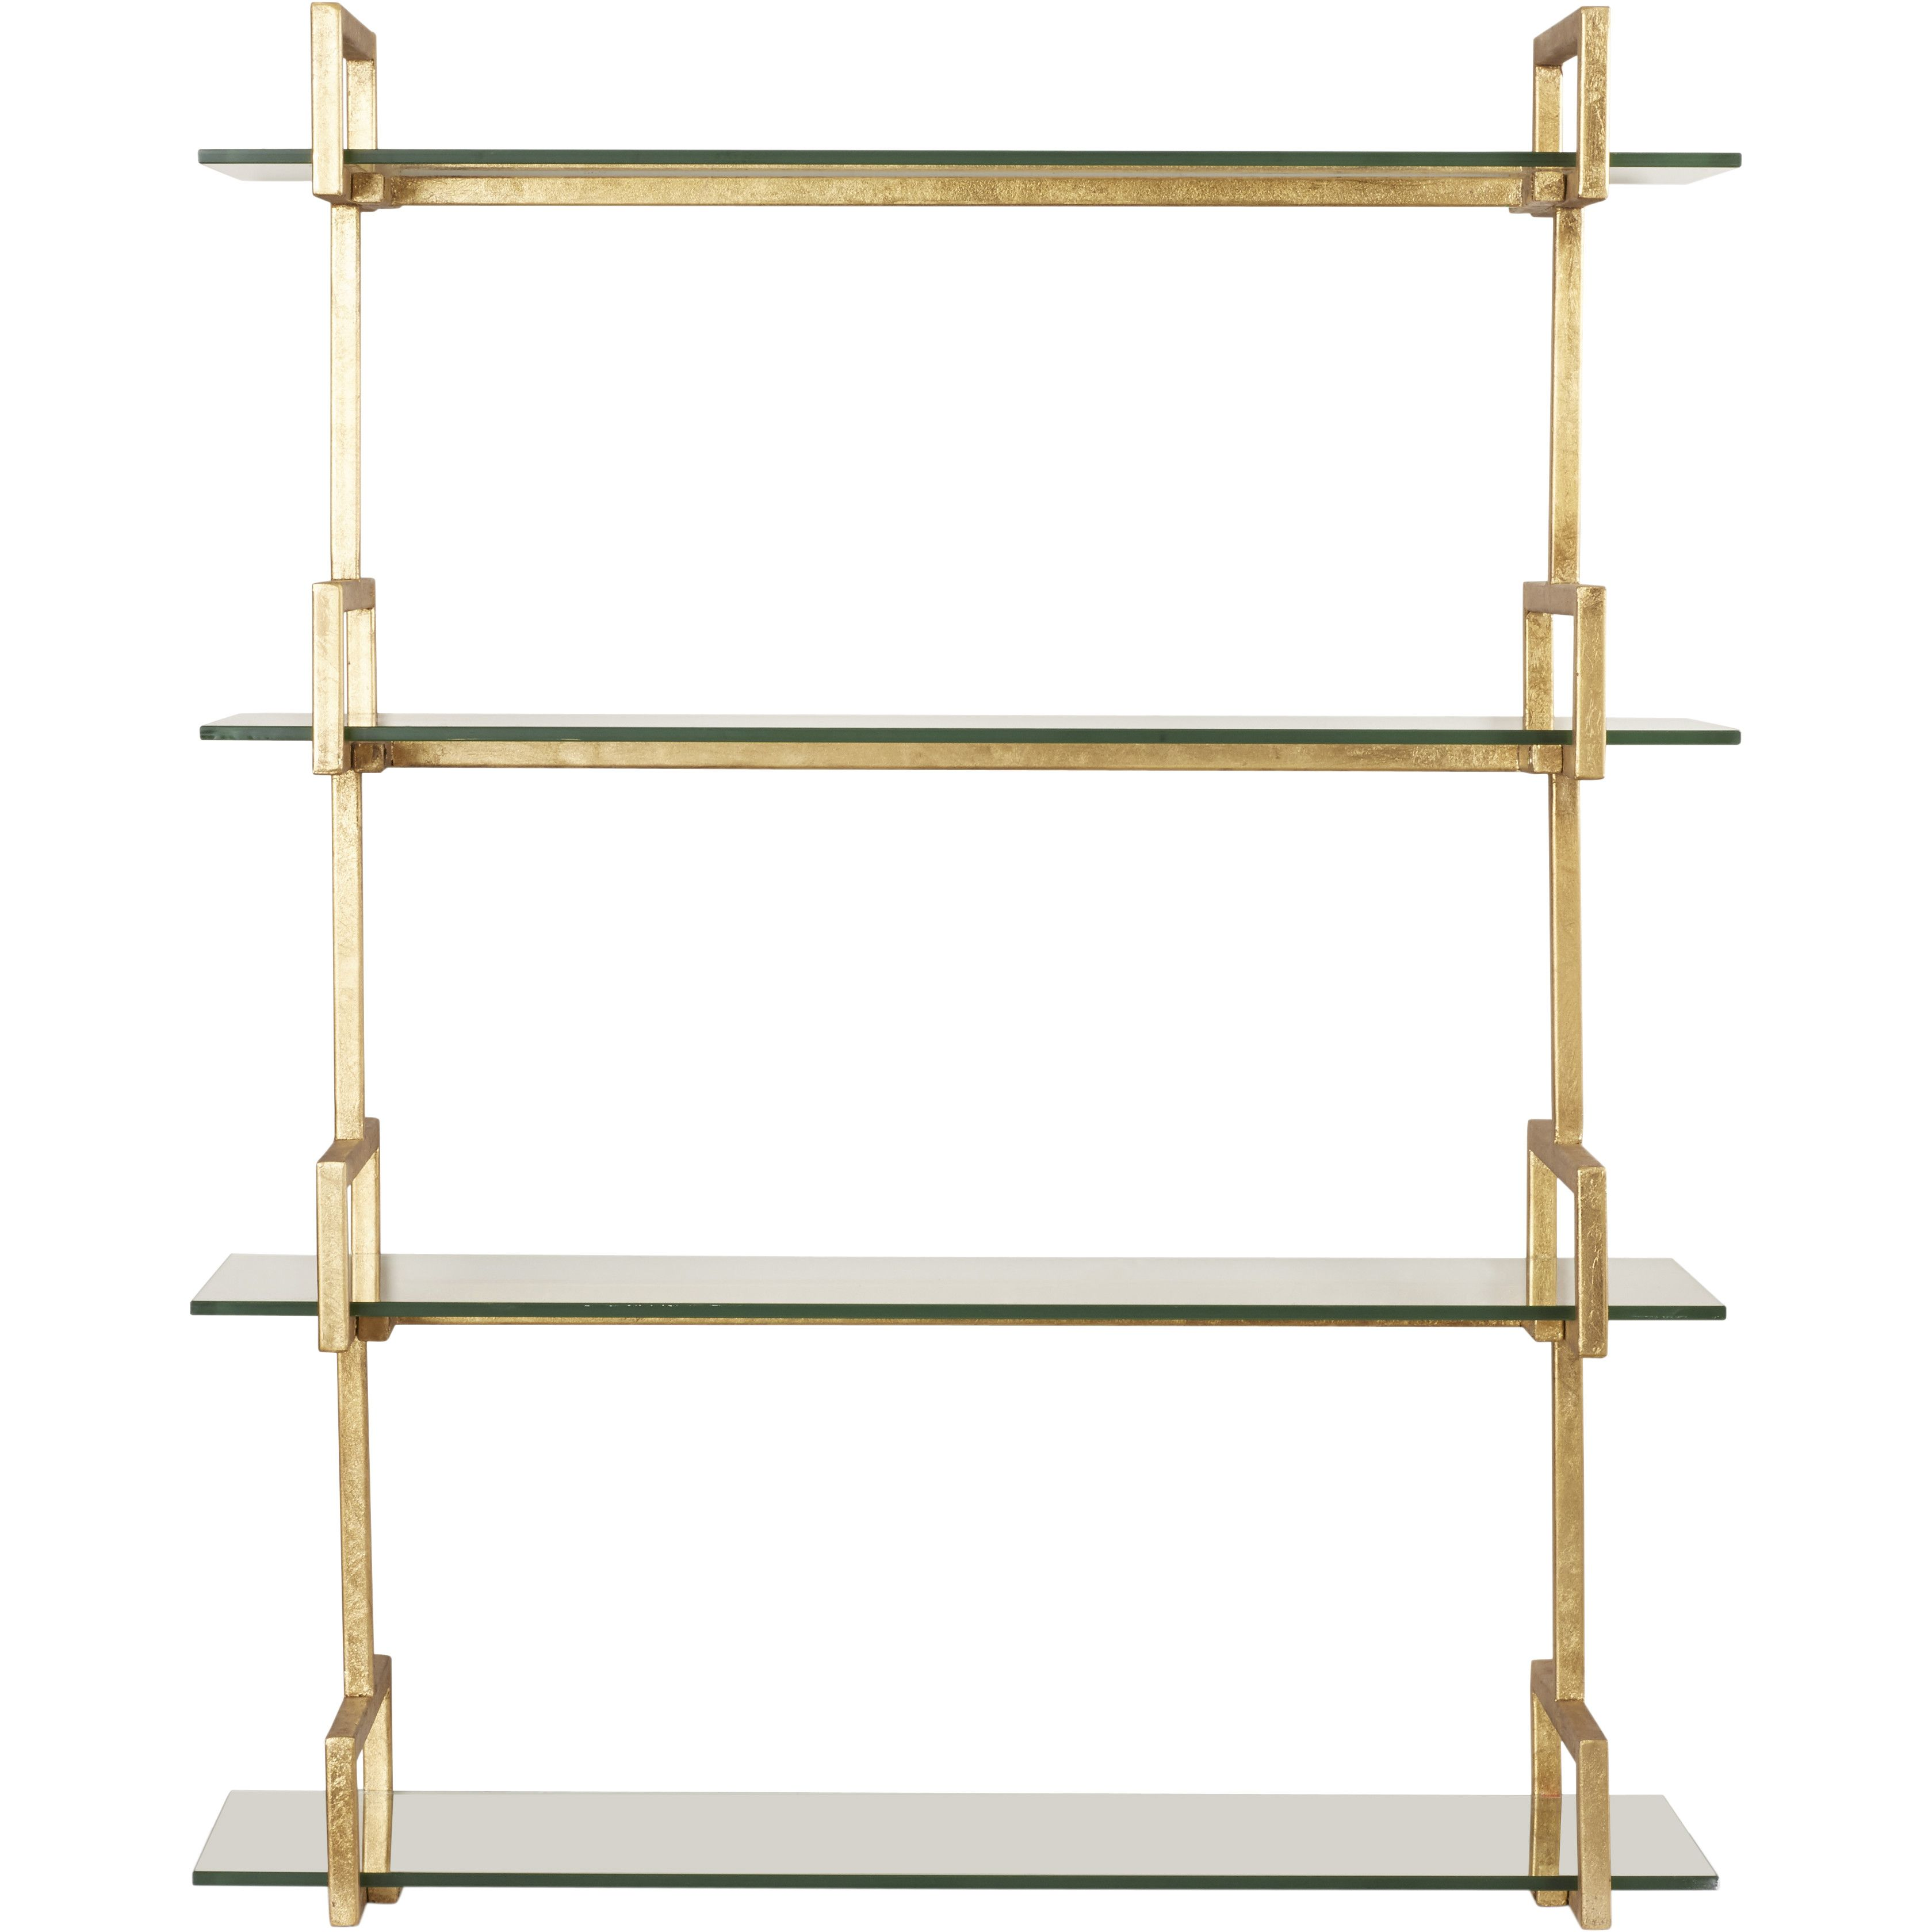 features iron frame finished in antiqued gold leaf tempered glass shelves